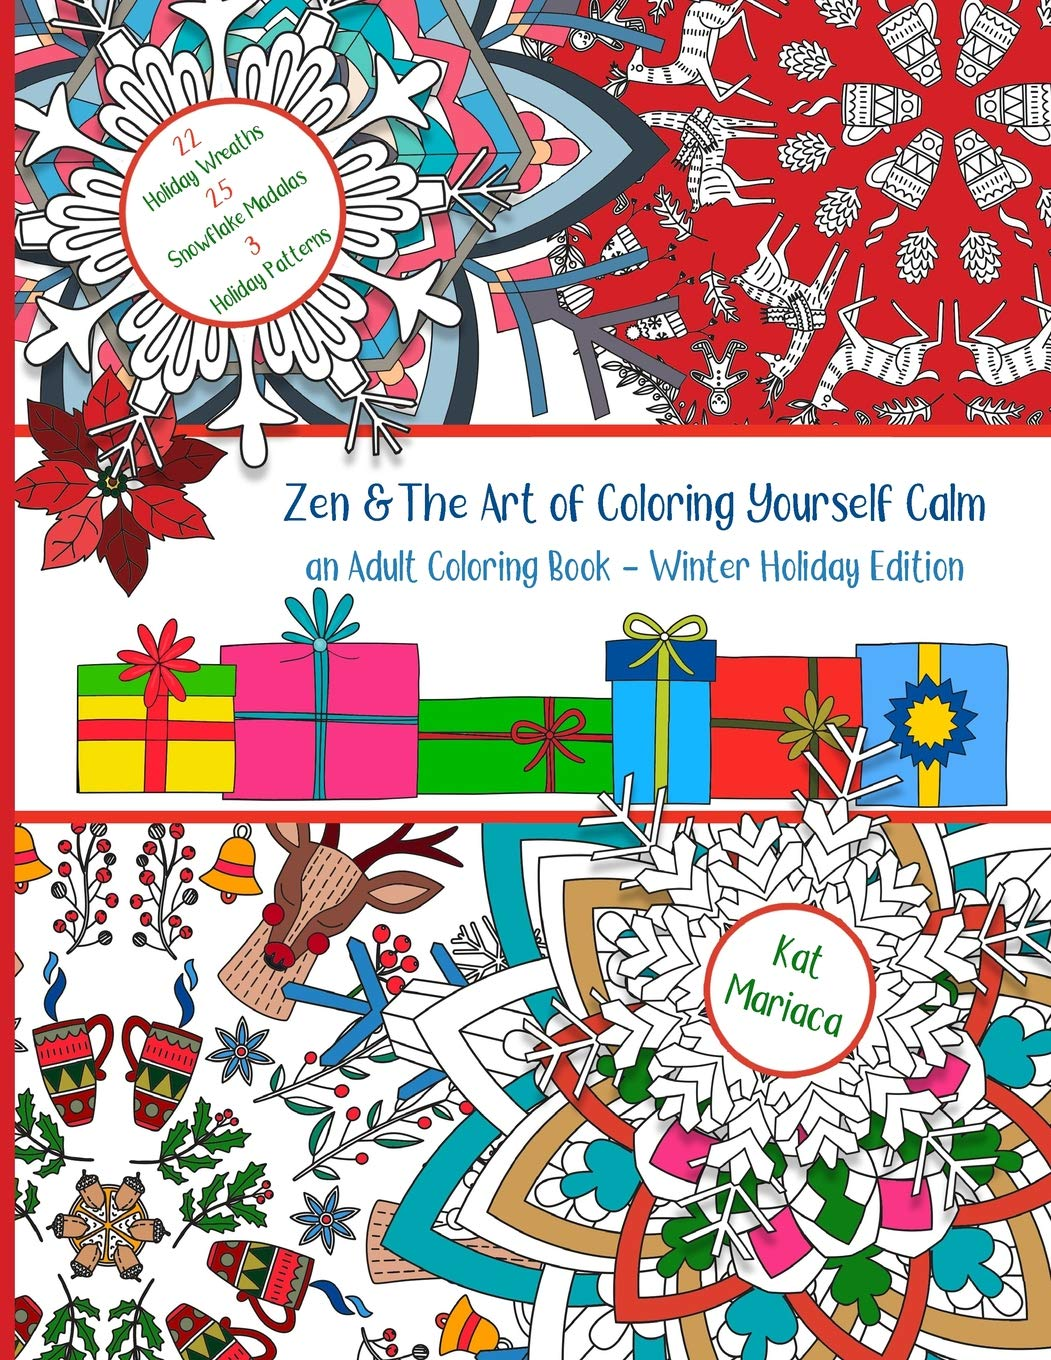 Amazon.com: Zen & The Art of Coloring Yourself Calm: Adult ...